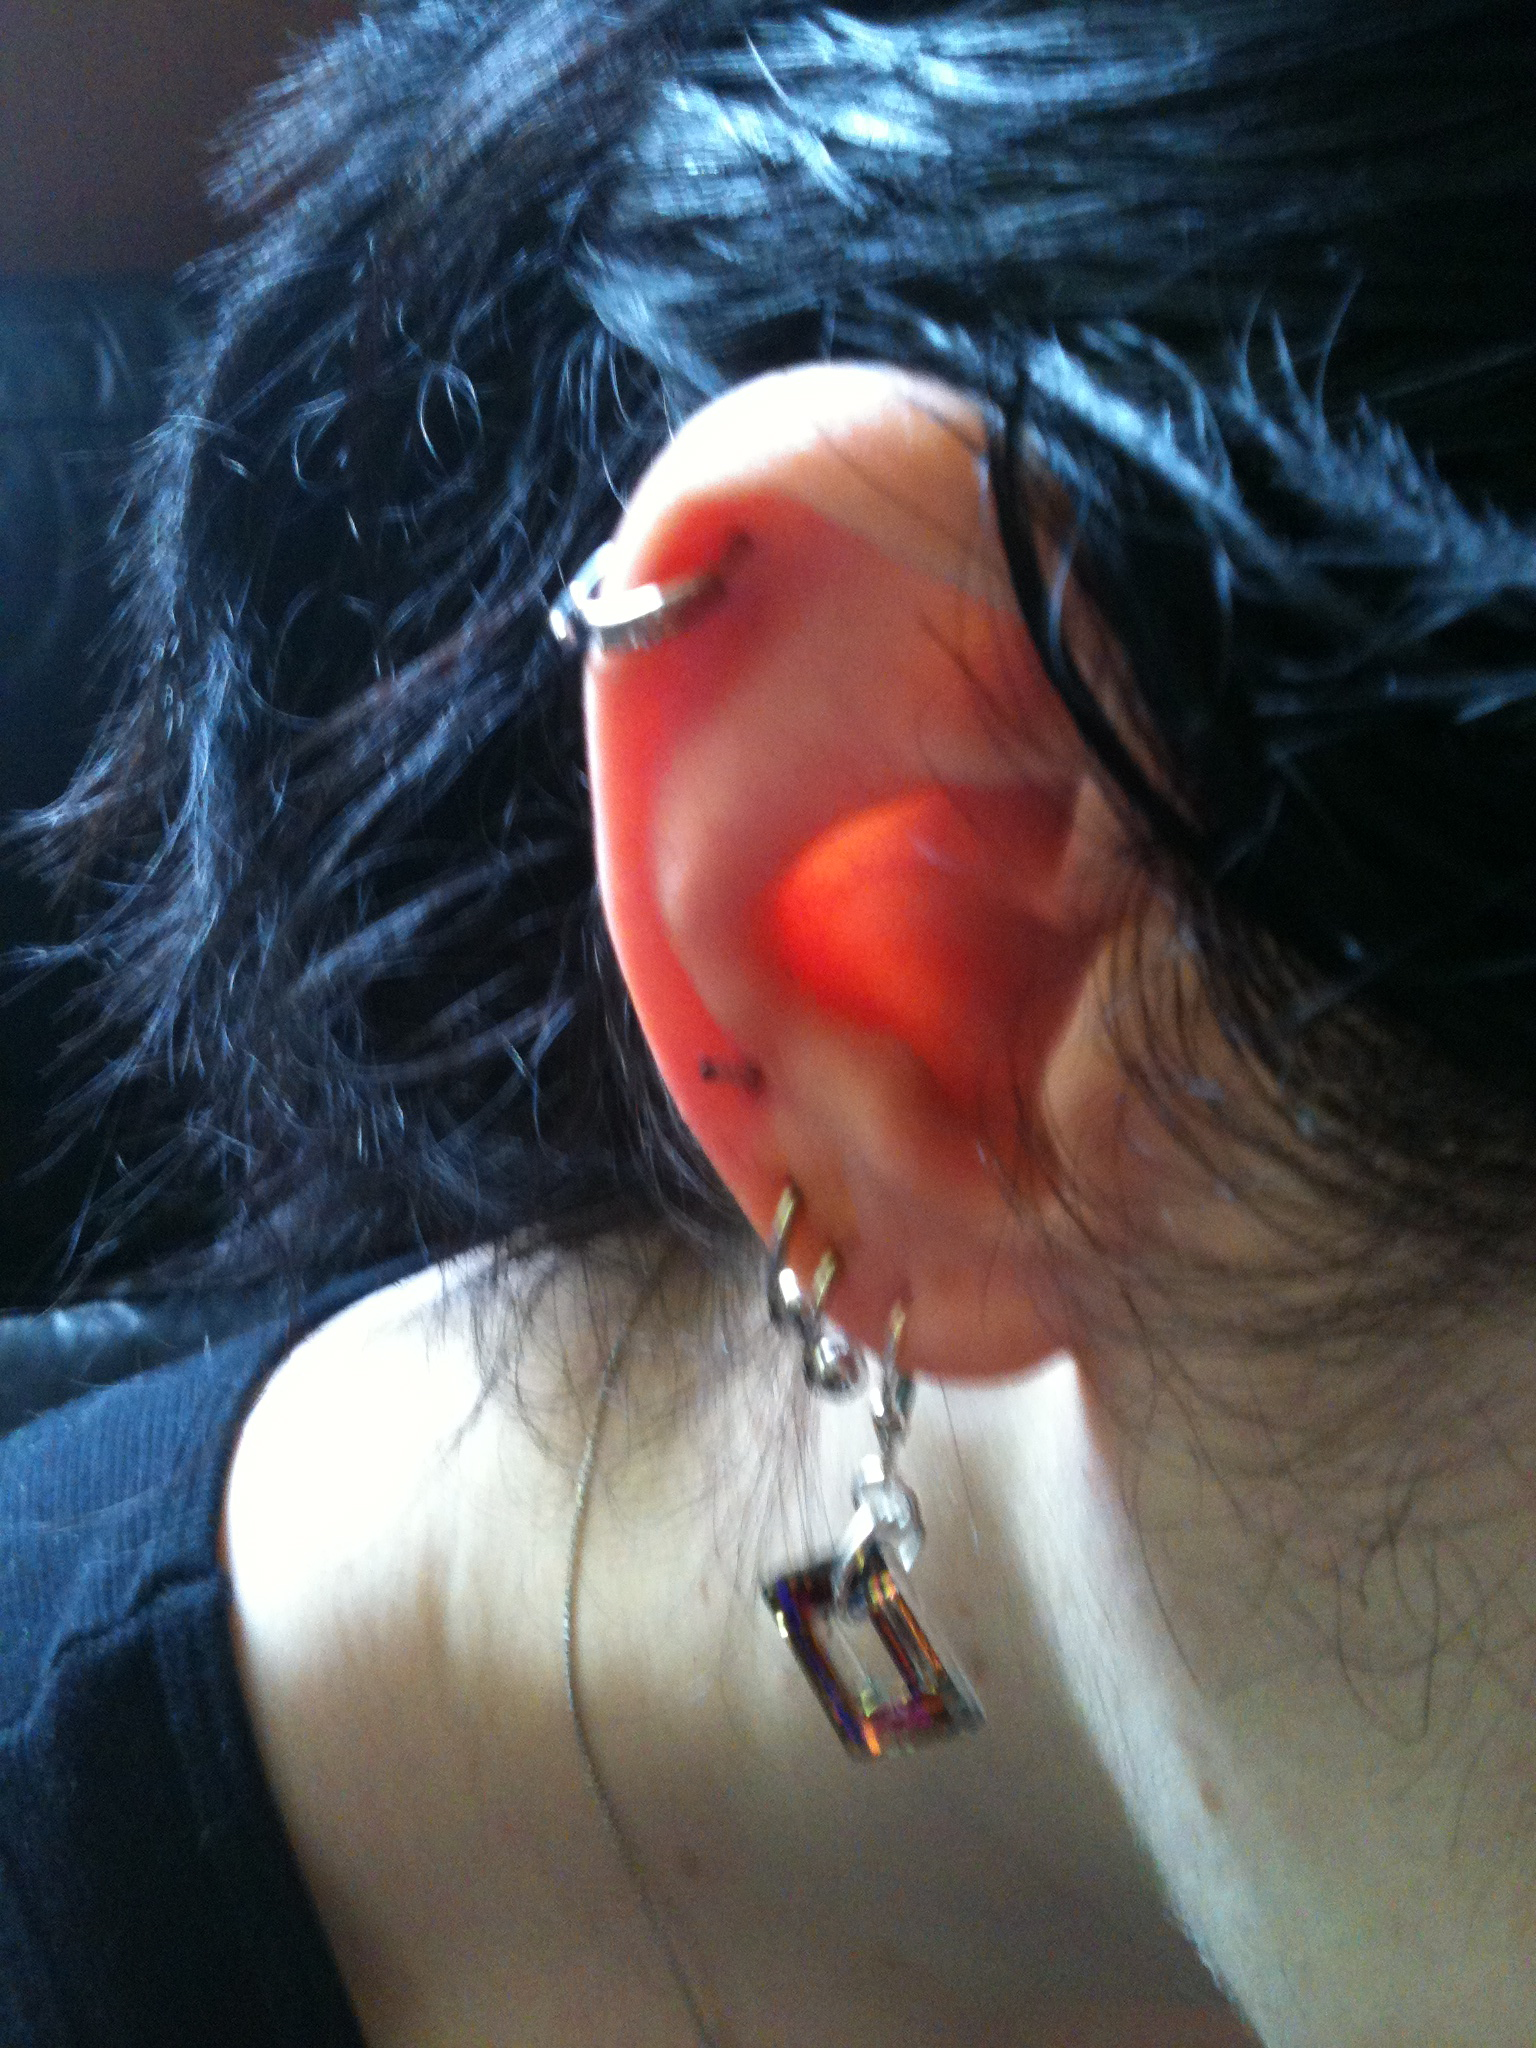 Can i use hydrogen peroxide to clean my cartilage piercing